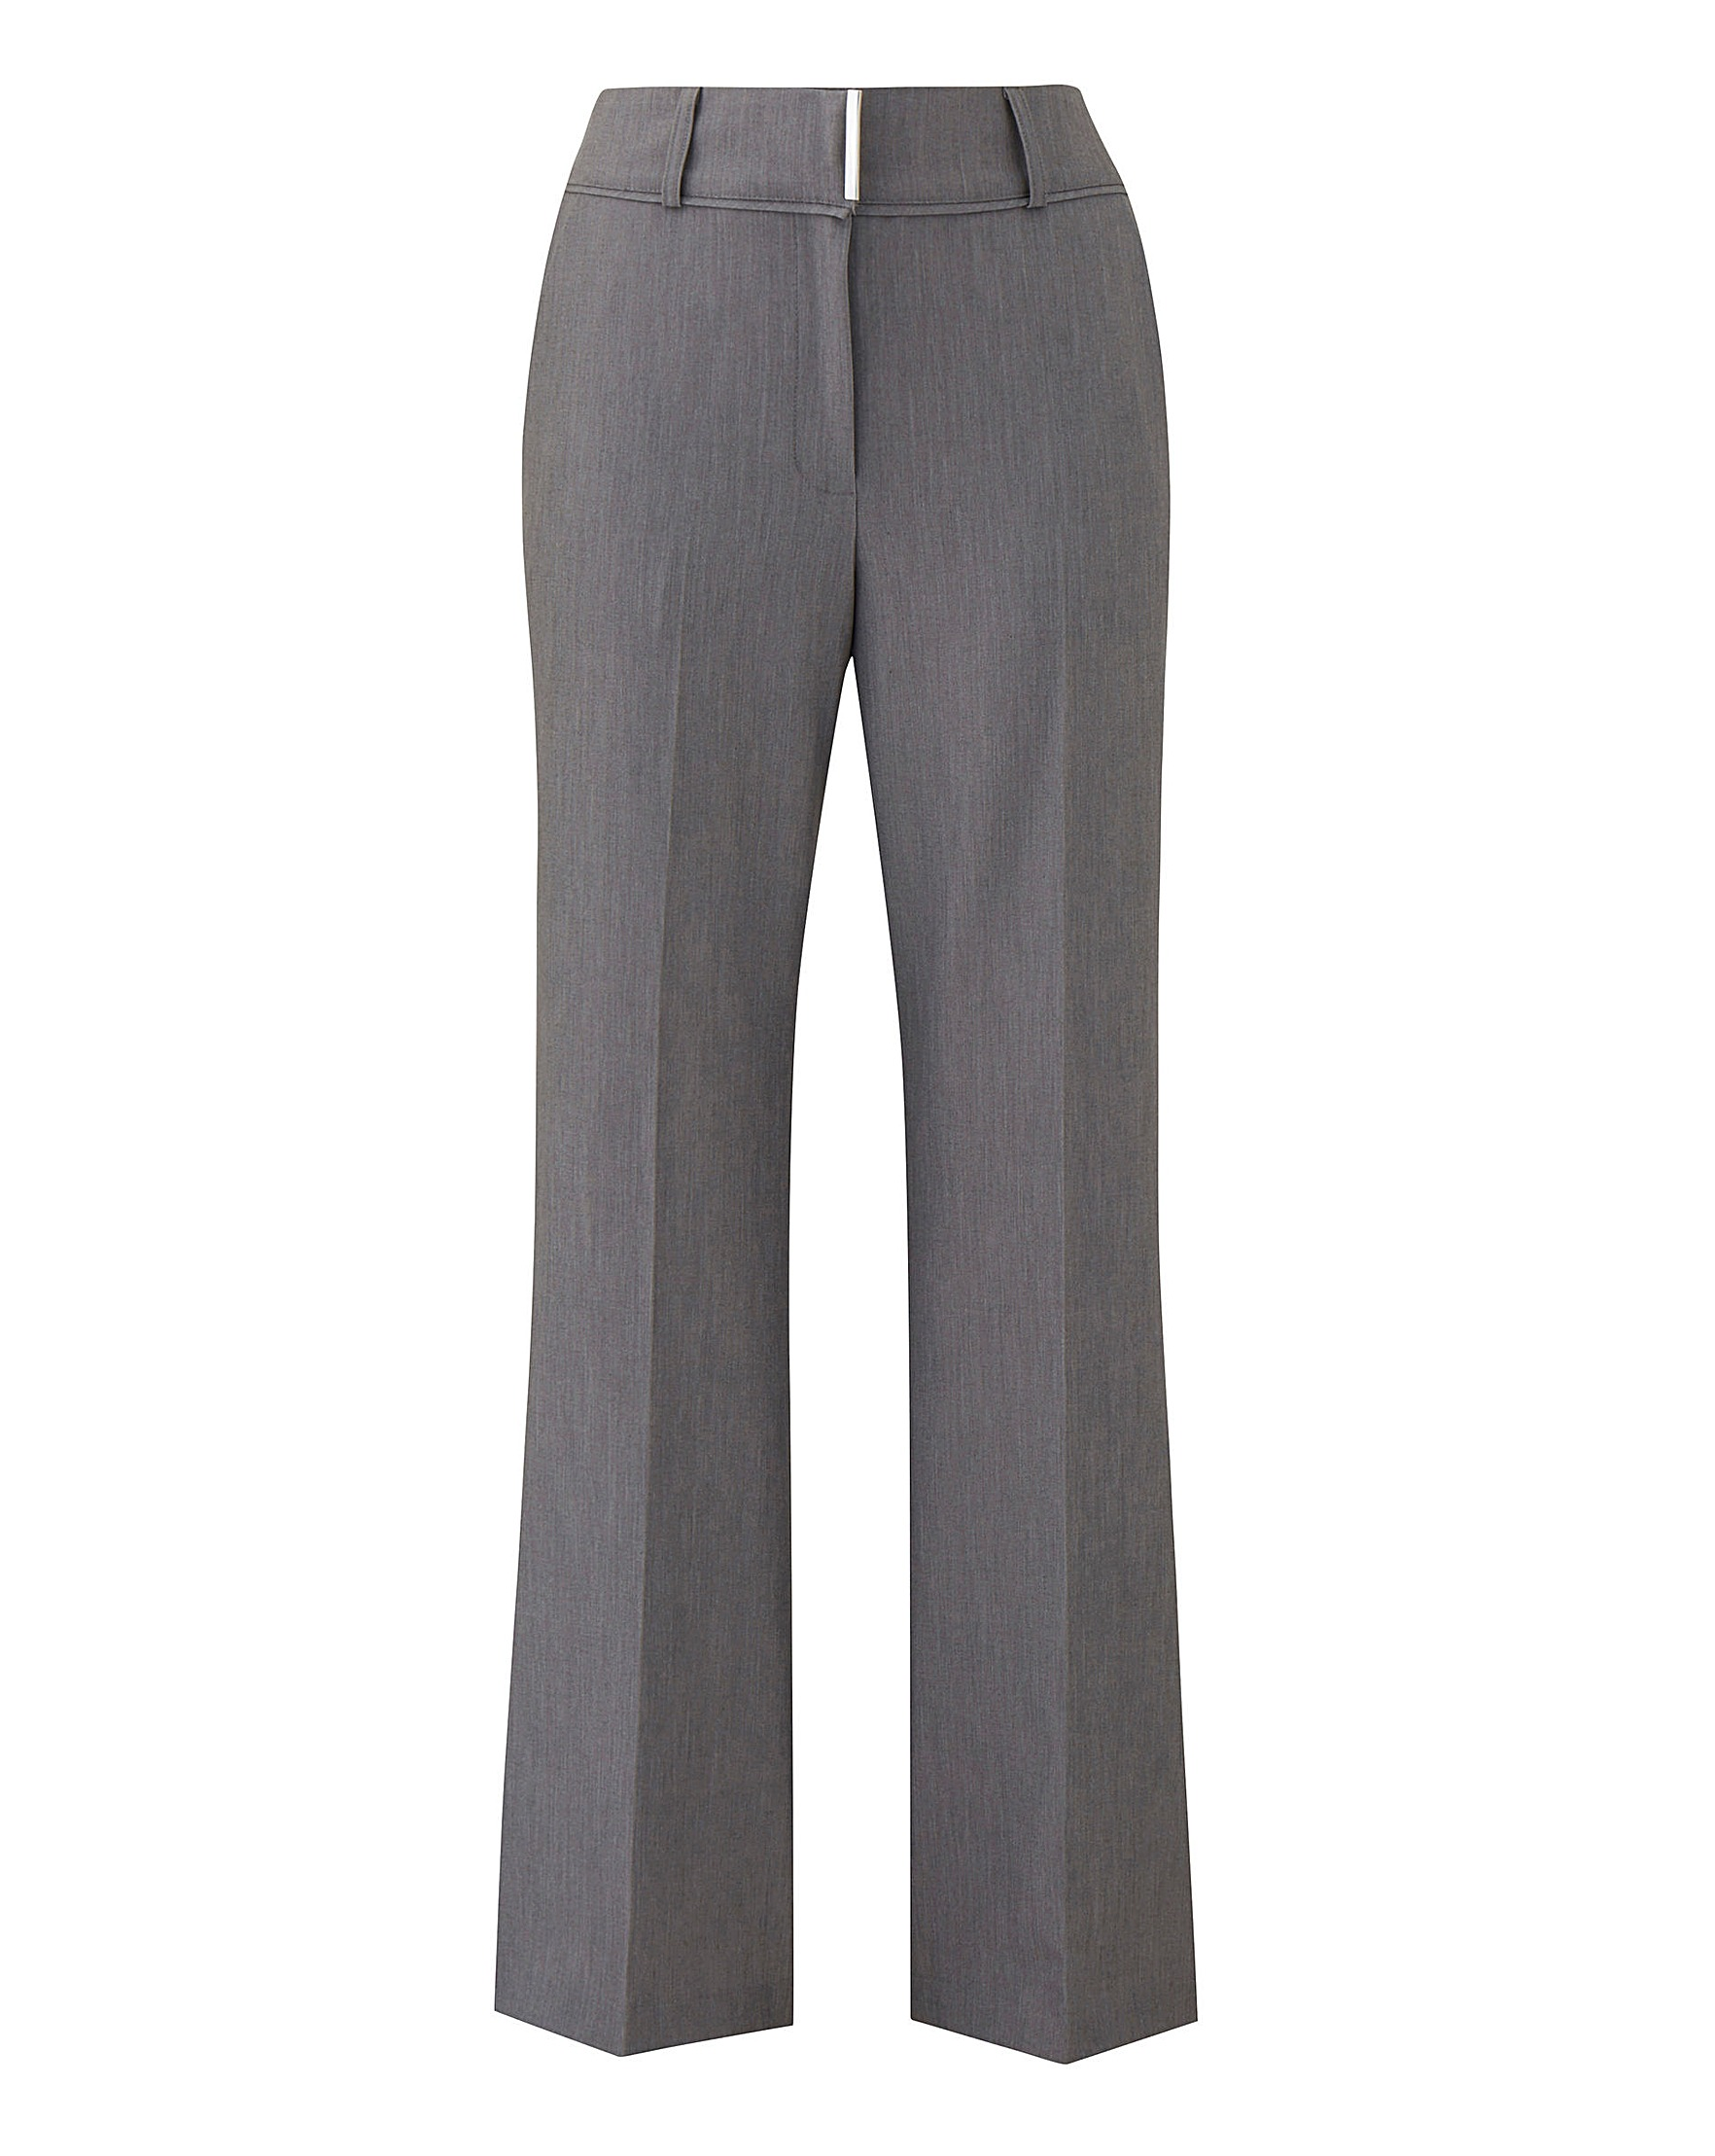 bd0bfd08d4fe6 Workwear Bootcut Trousers Petite | Marisota